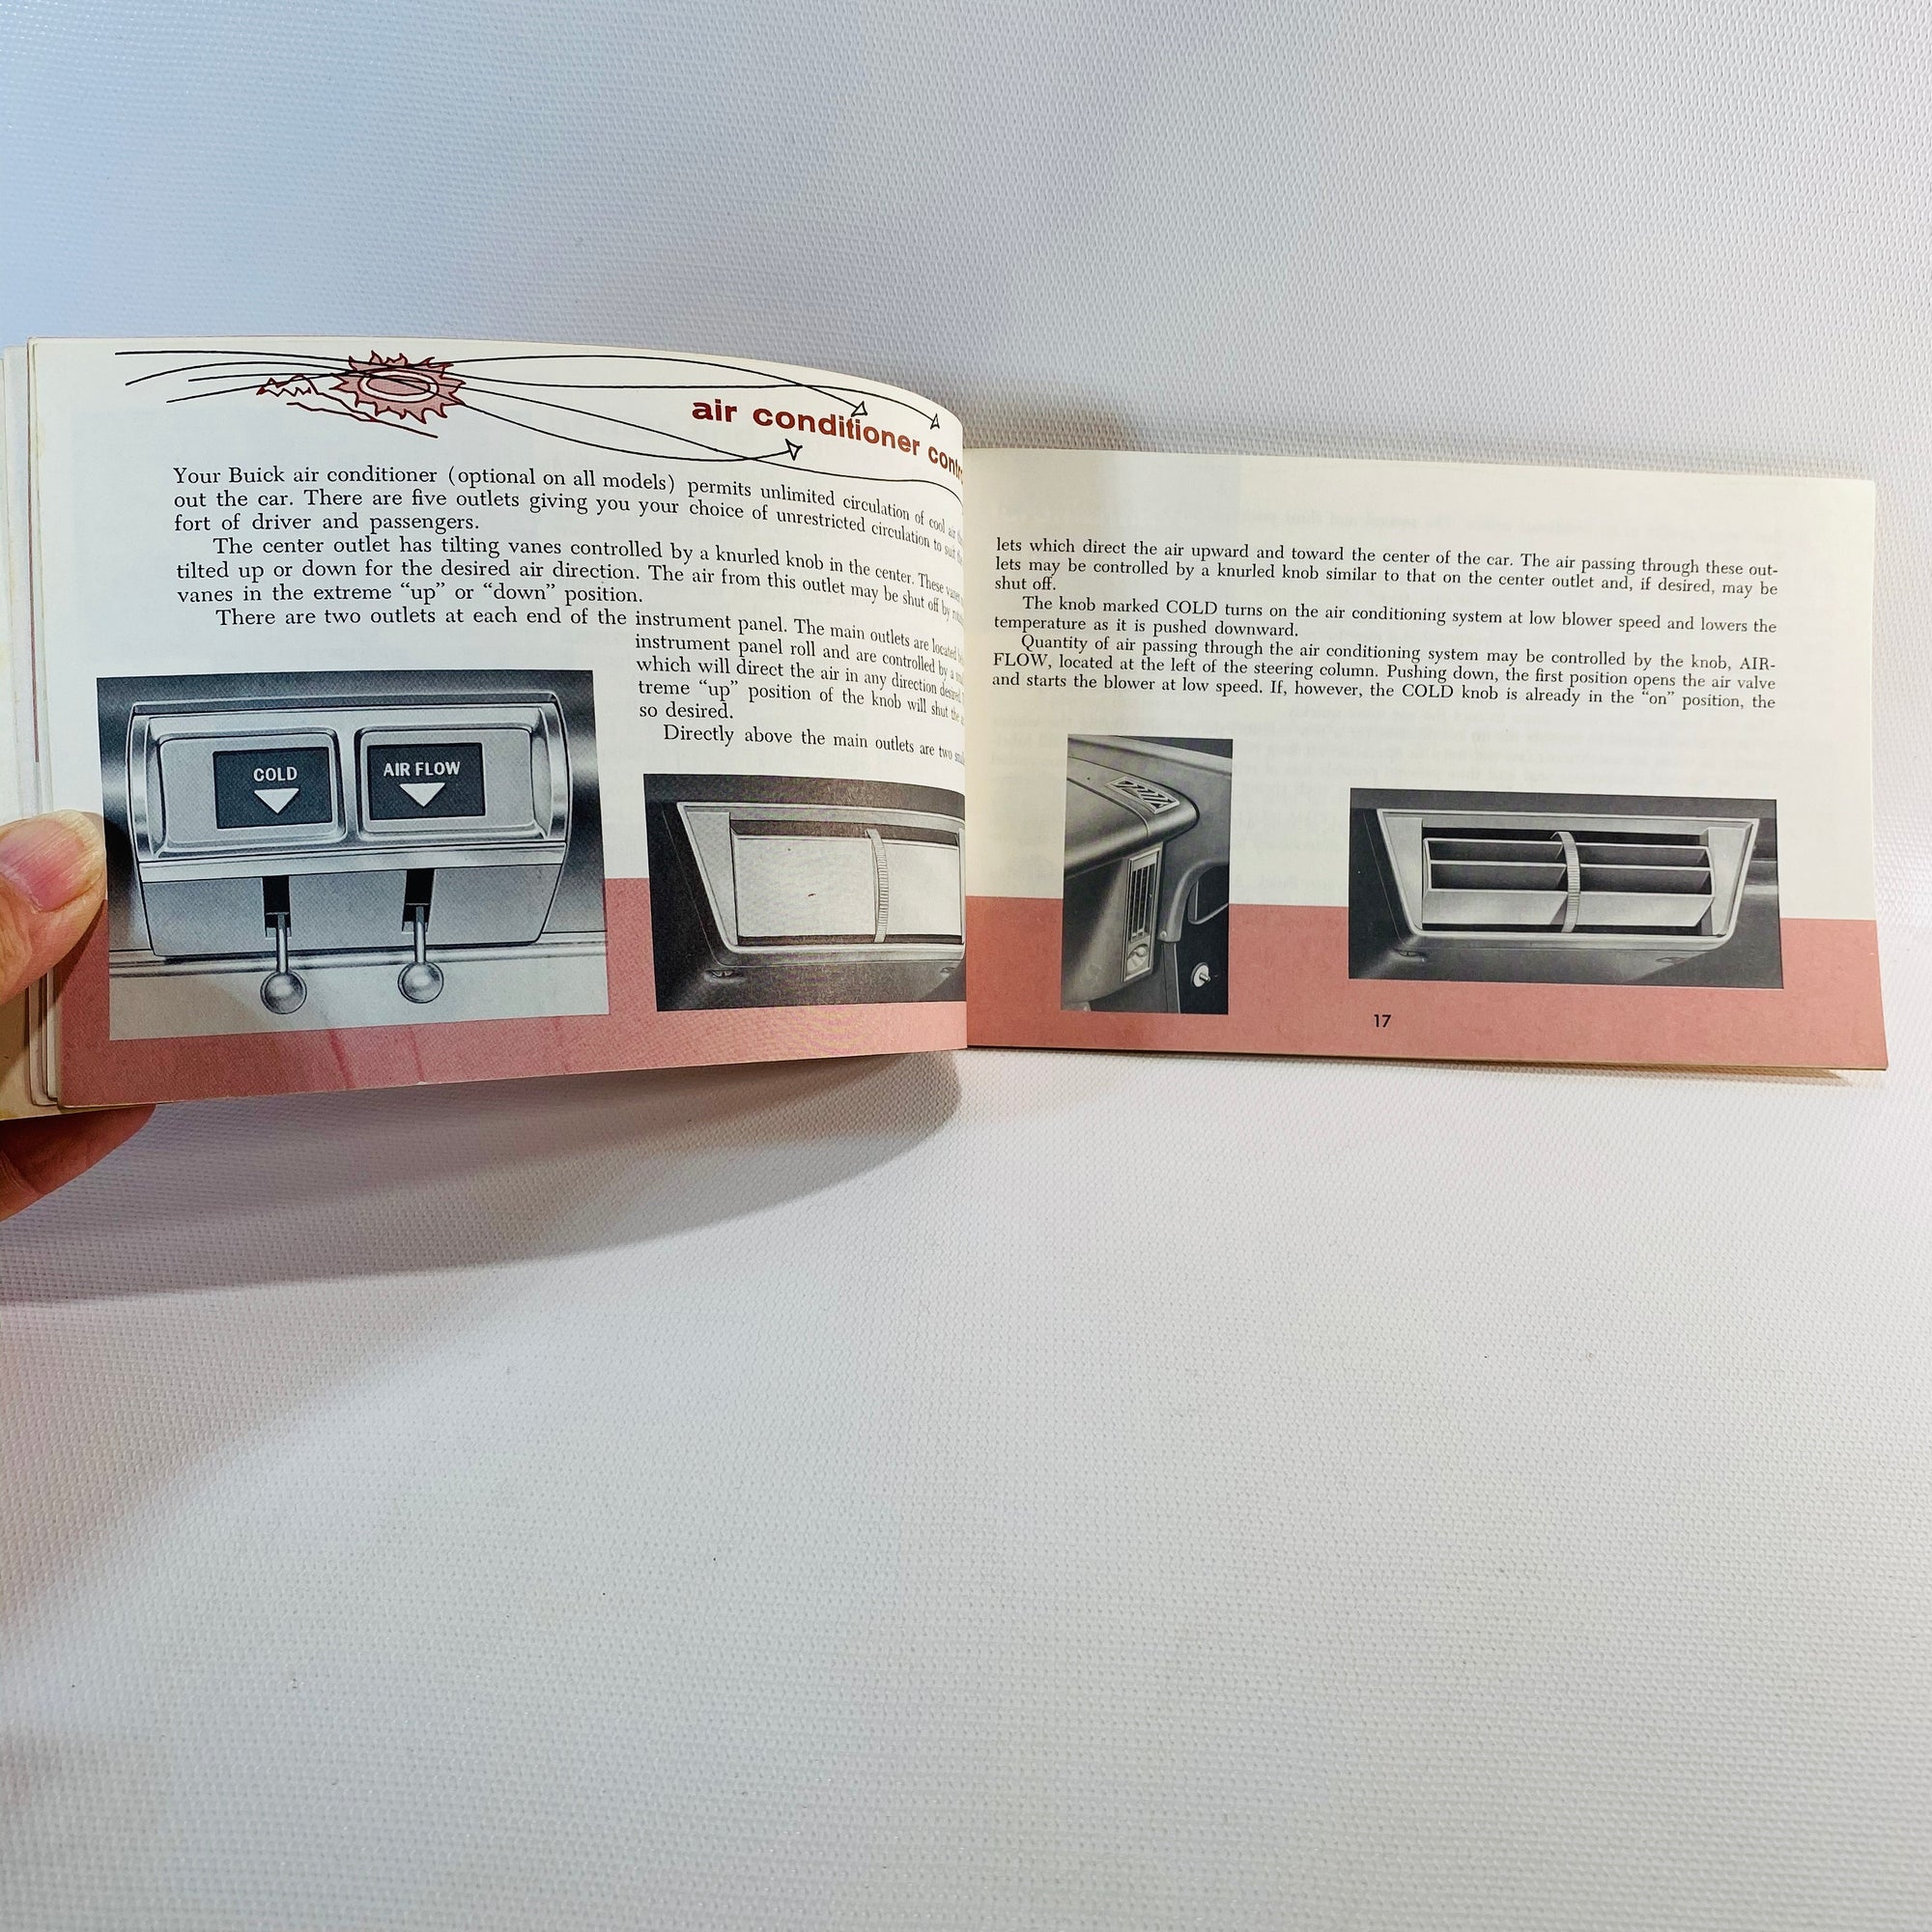 Buick 1960 Owners Guide Buick Motor Division Flint Mi.-Reading Vintage